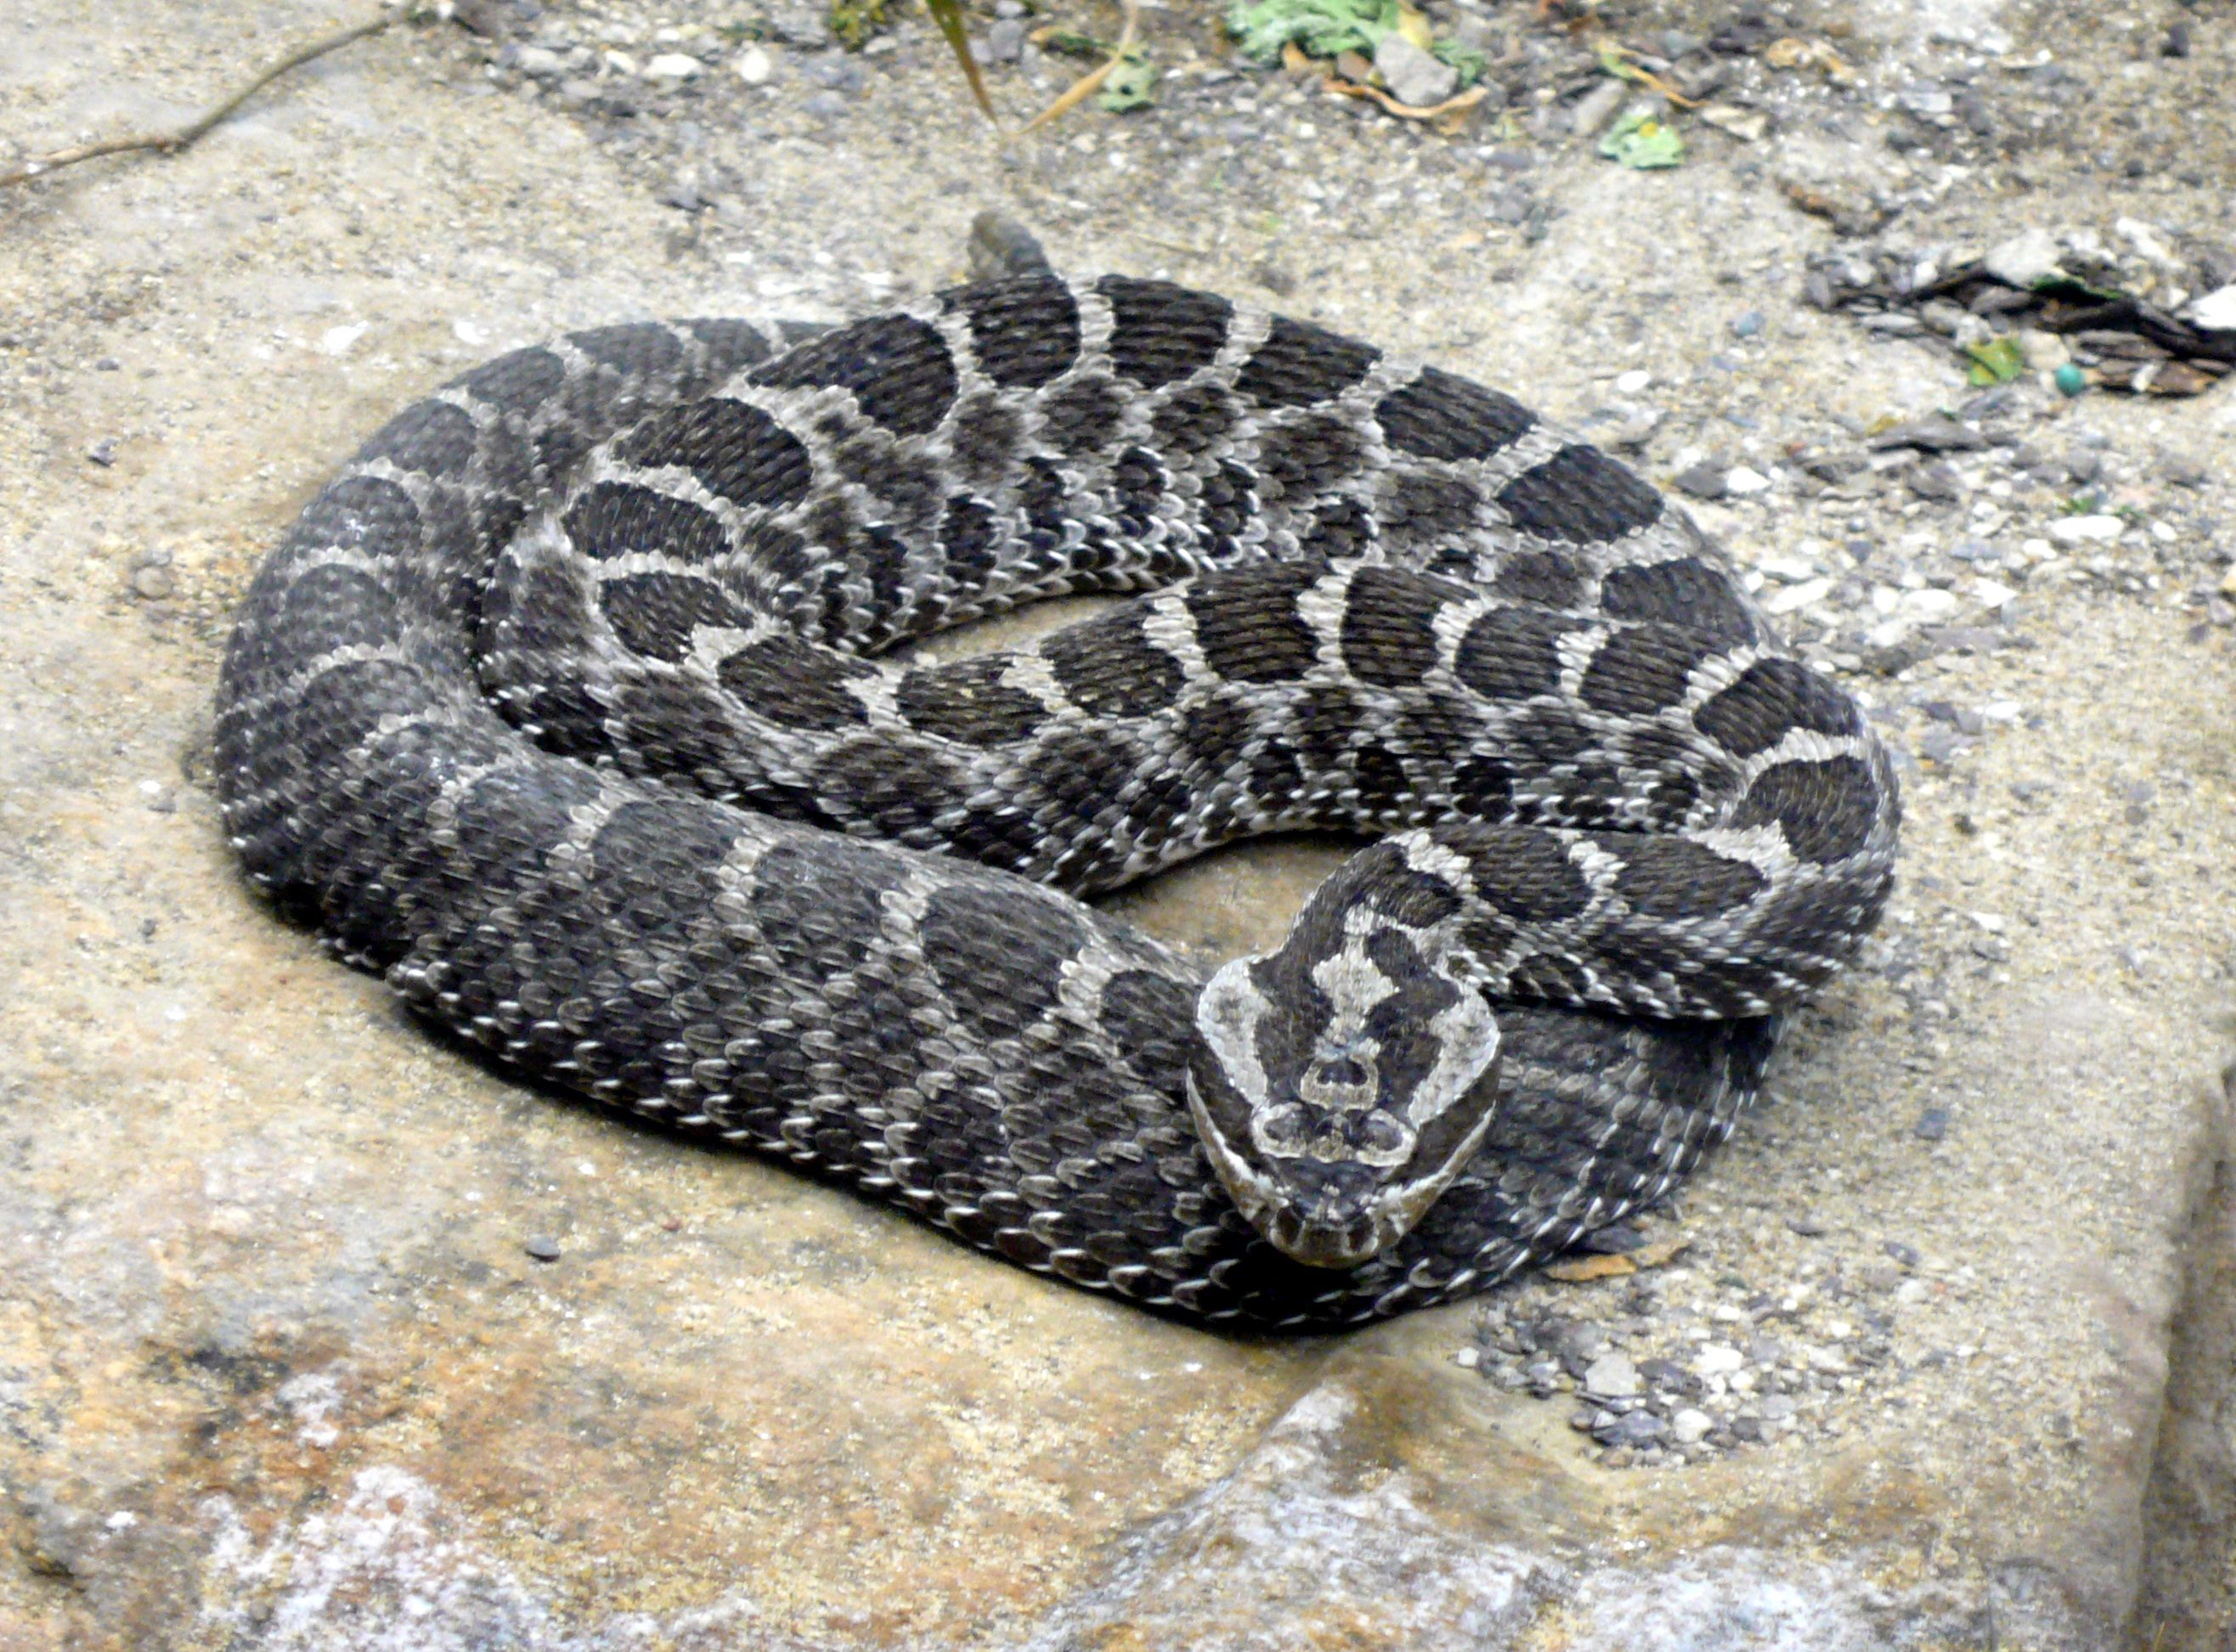 Pin By Mary Bates On Snakes And Such Poisonous Snakes Snake Rattlesnake